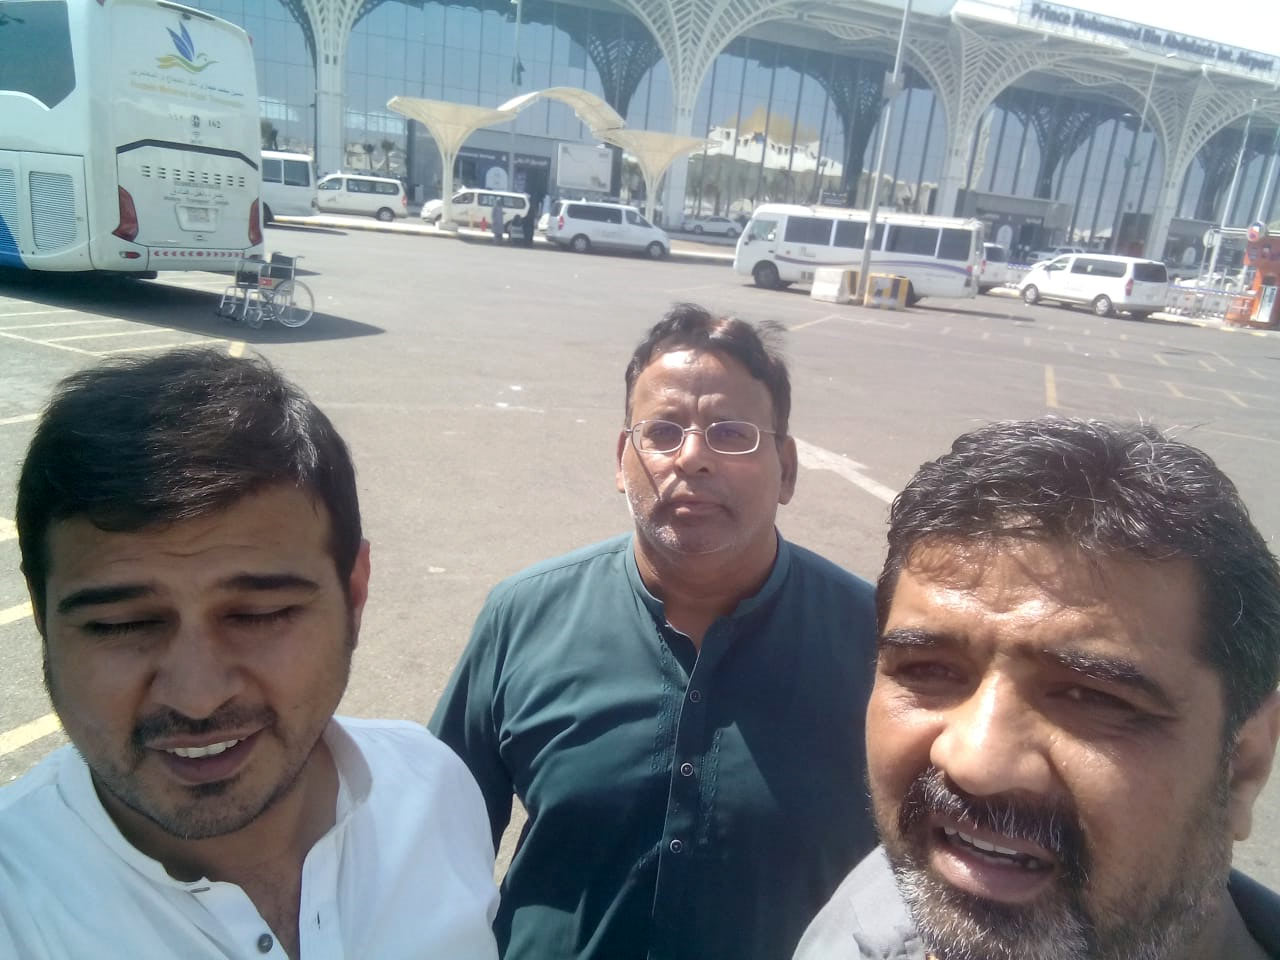 Kamran A. Khan, Dr. Ata Ur Rehman and Imran Ahmed Khan Ghouri at Madina Airport